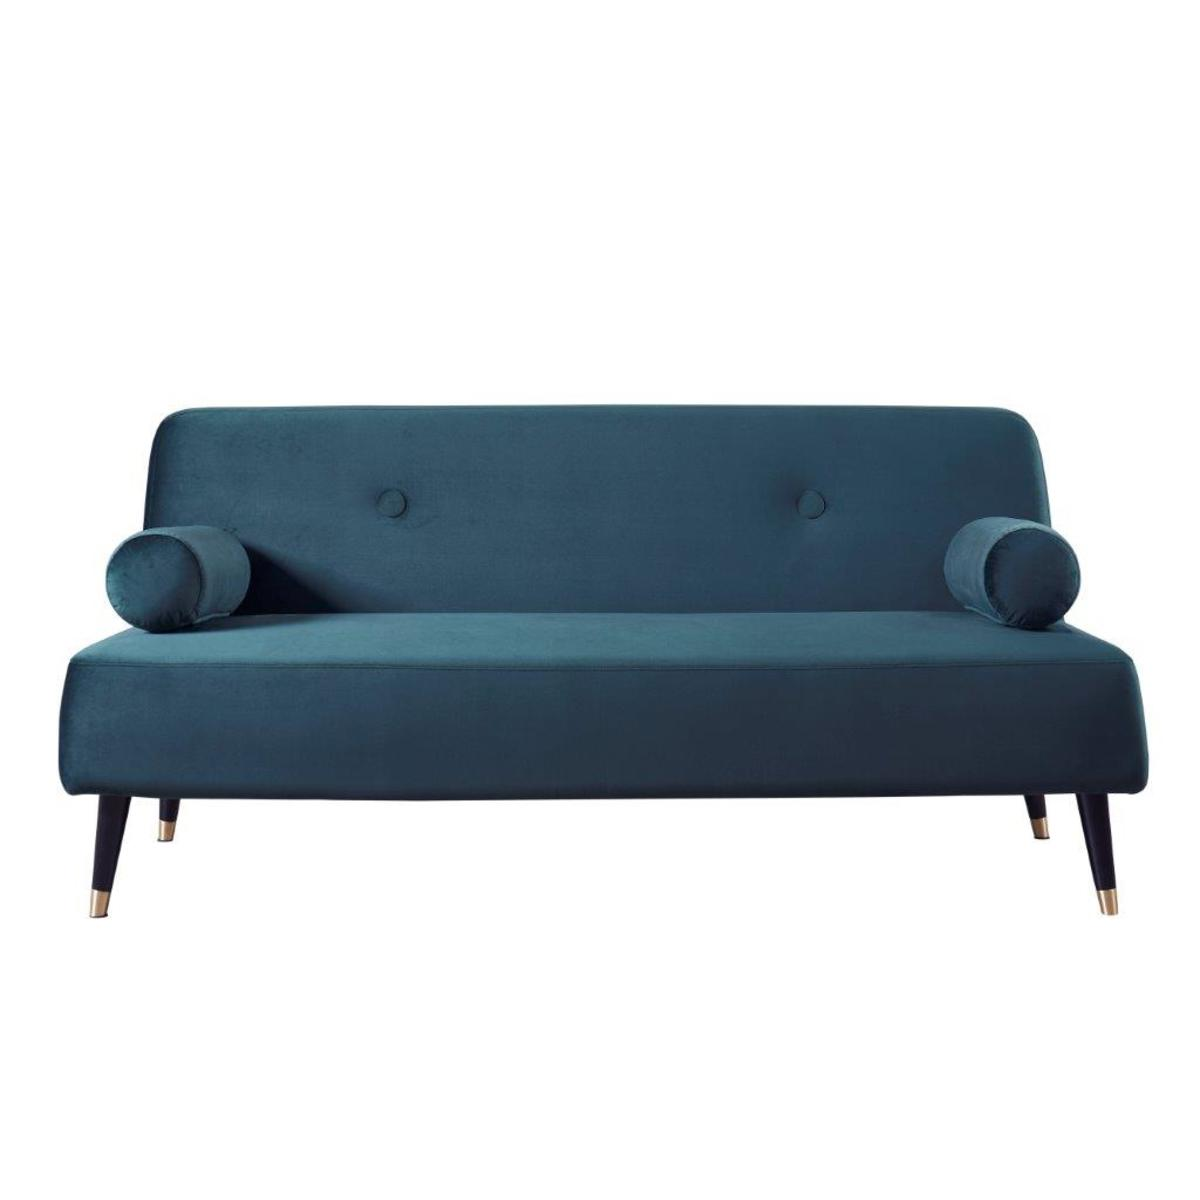 "72"" Fabric Sofa Three Seater(Green COLOR)"